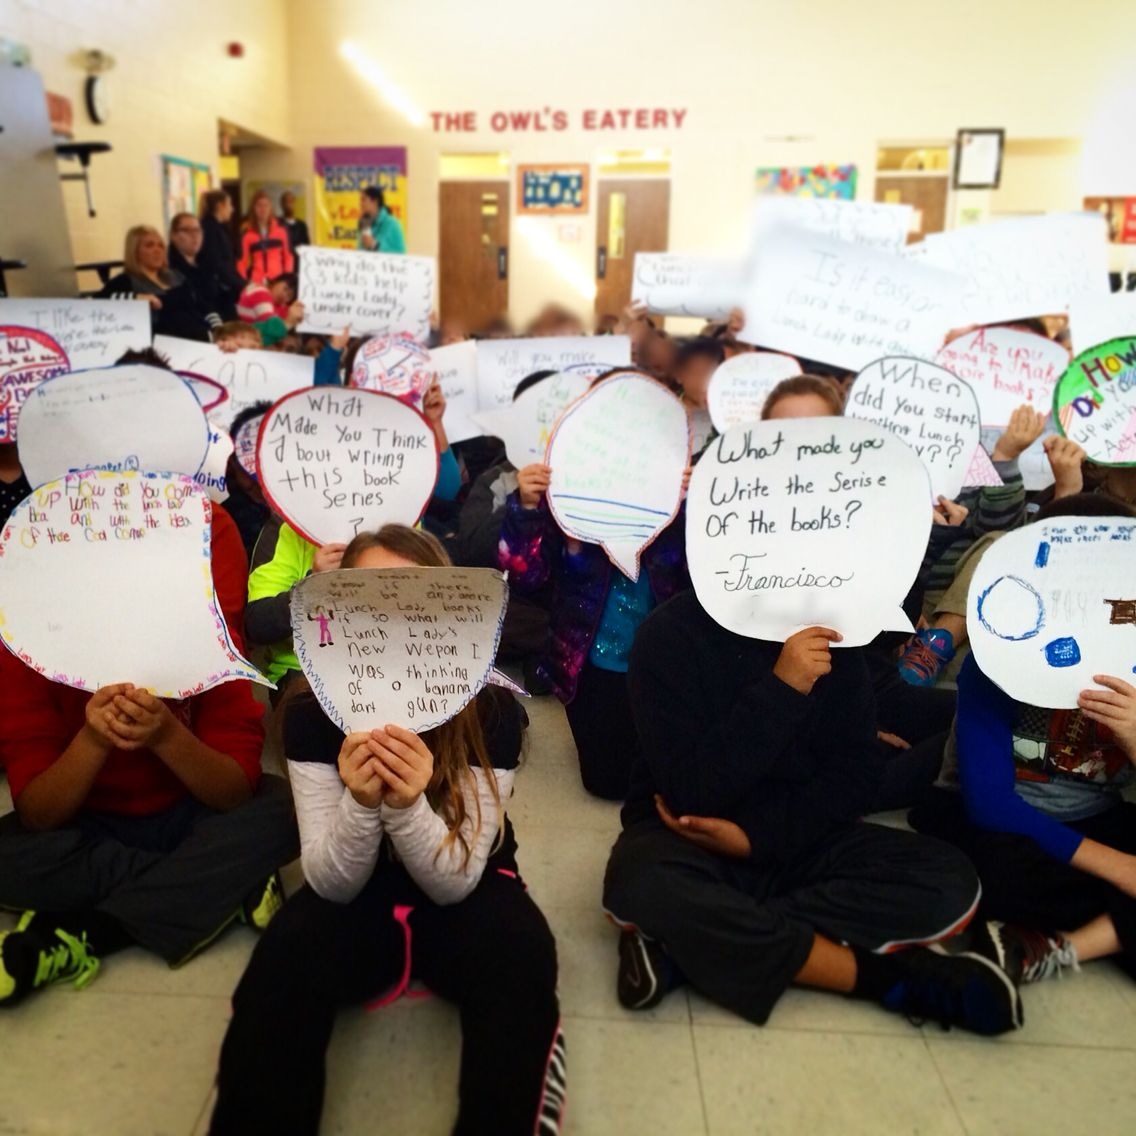 One of the coolest things I've ever seen at a school. Kids' questions were written on word balloons. (Made from poster board) I answered questions as quickly as I could by scanning the audience. Brian Smith, you are a genius!